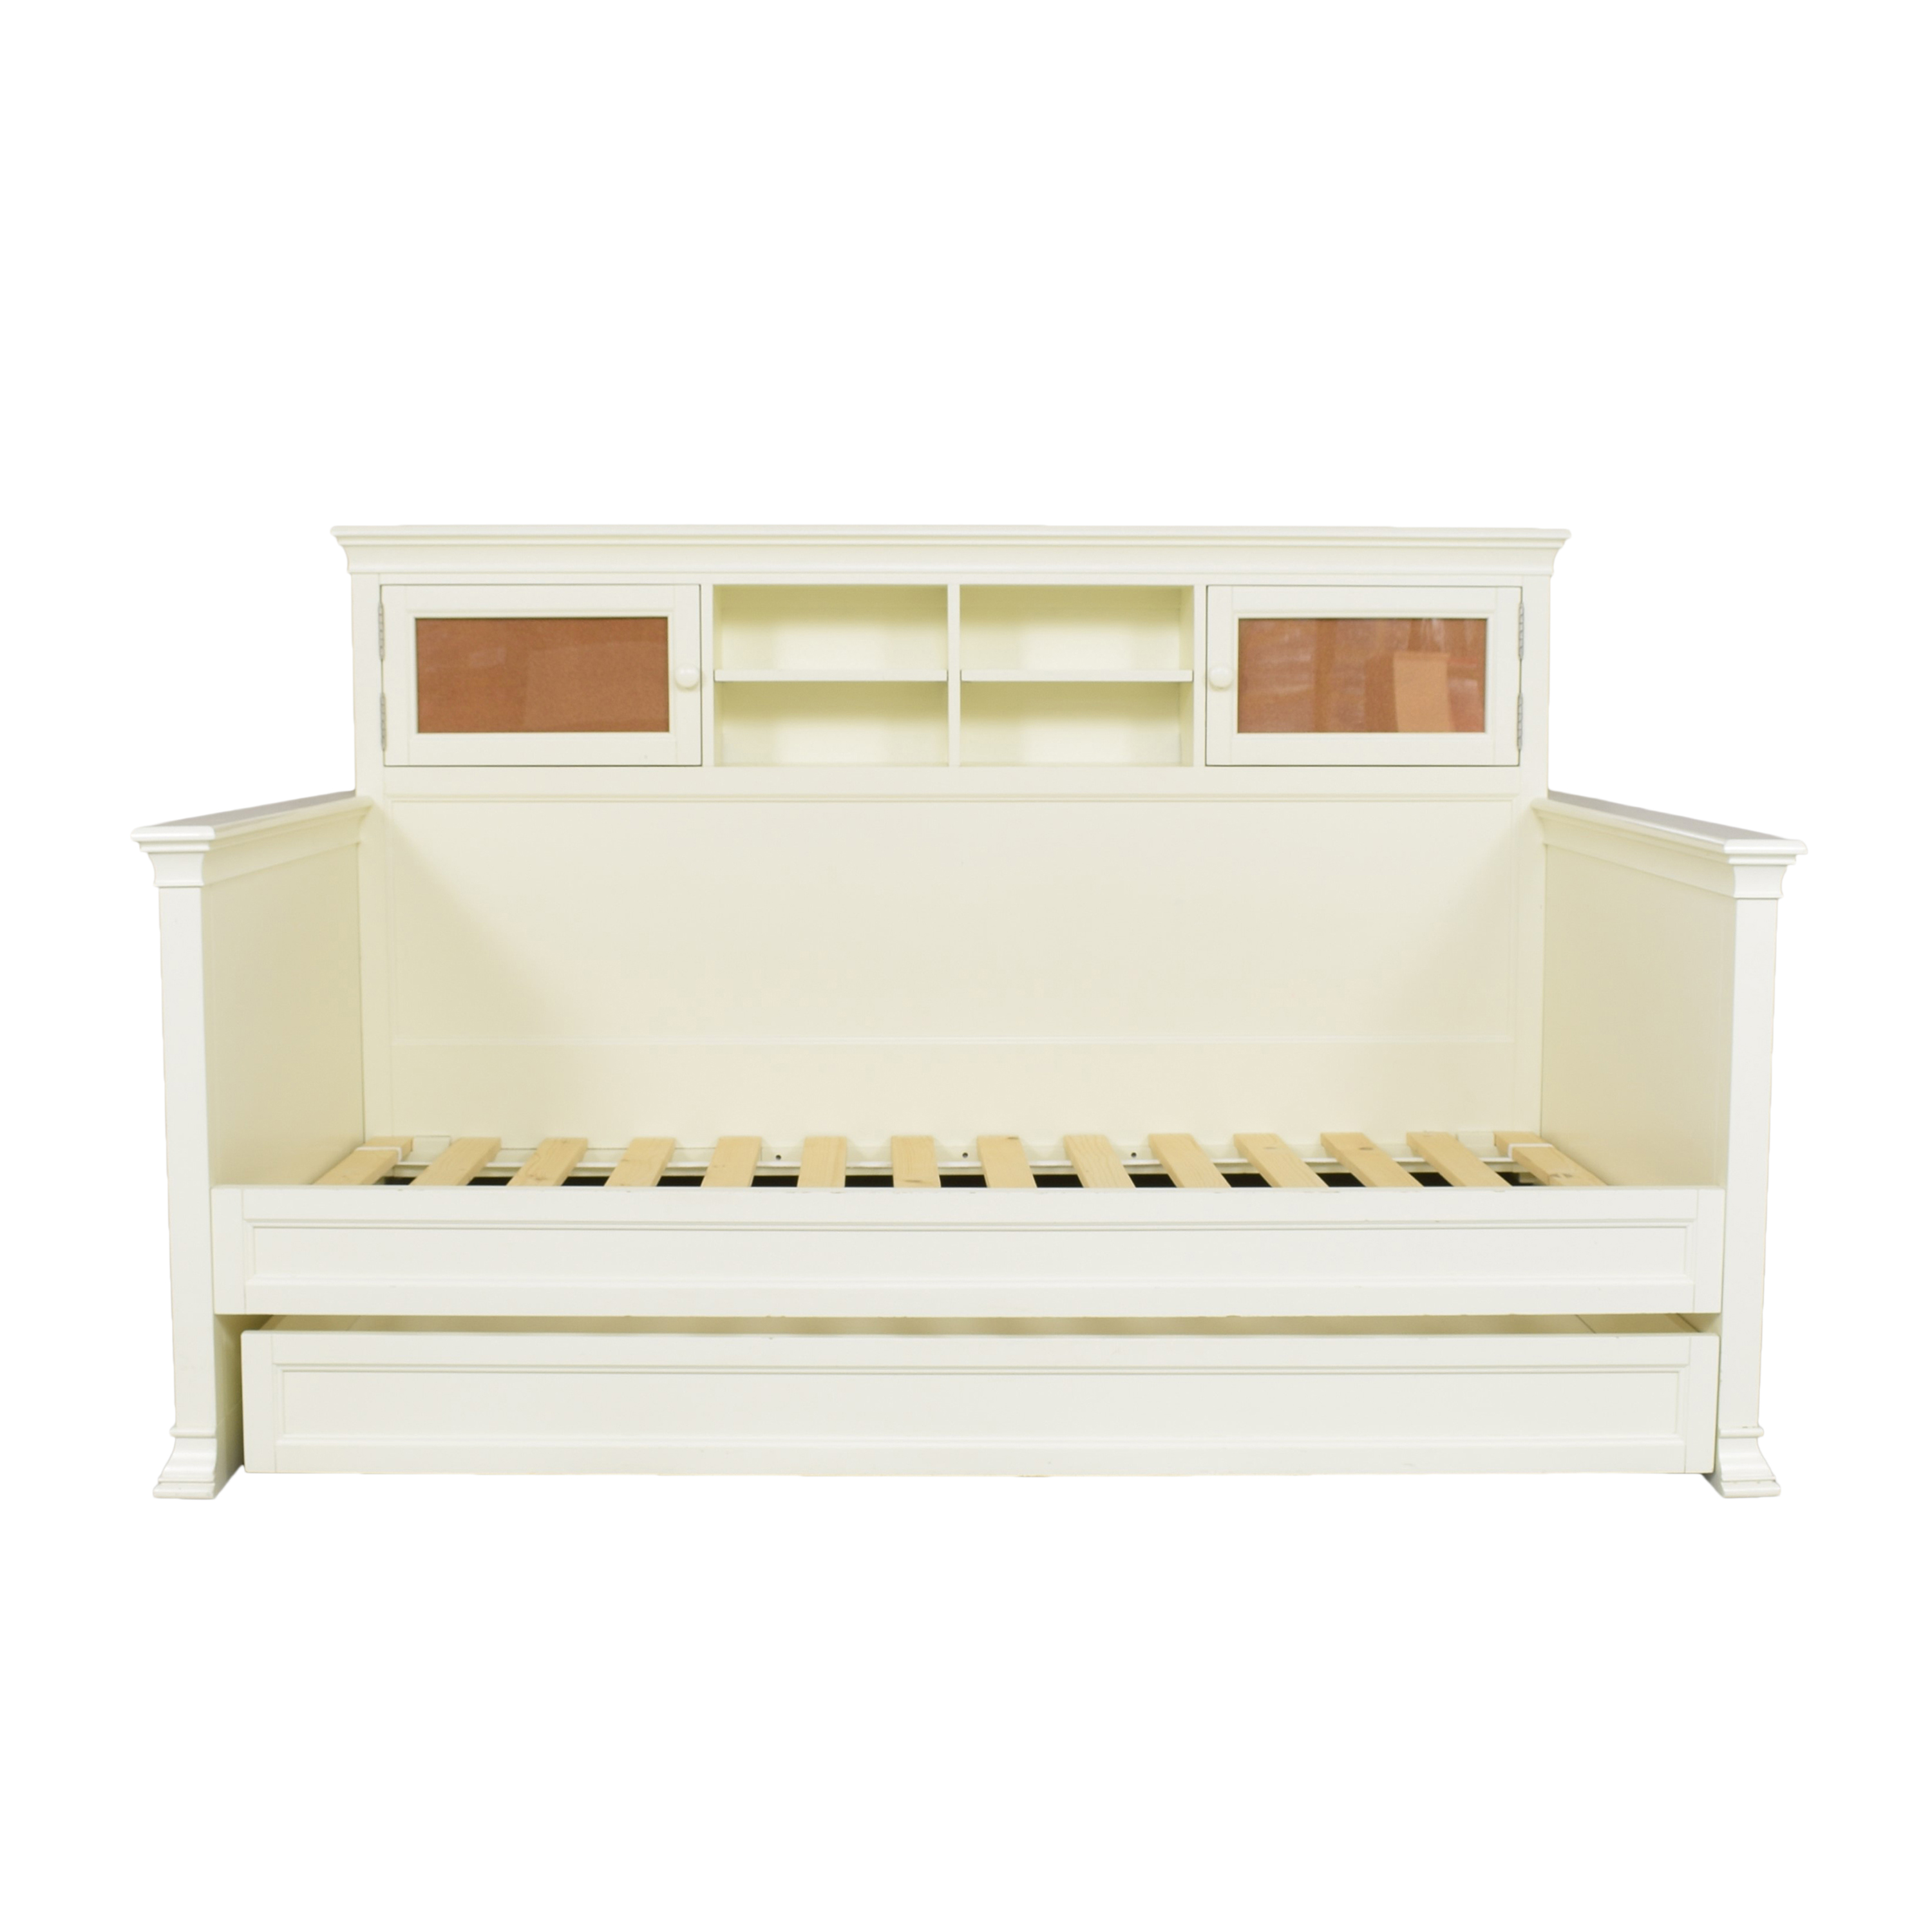 Pottery Barn Teen Pottery Barn Teen Display-It Daybed with Trundle used